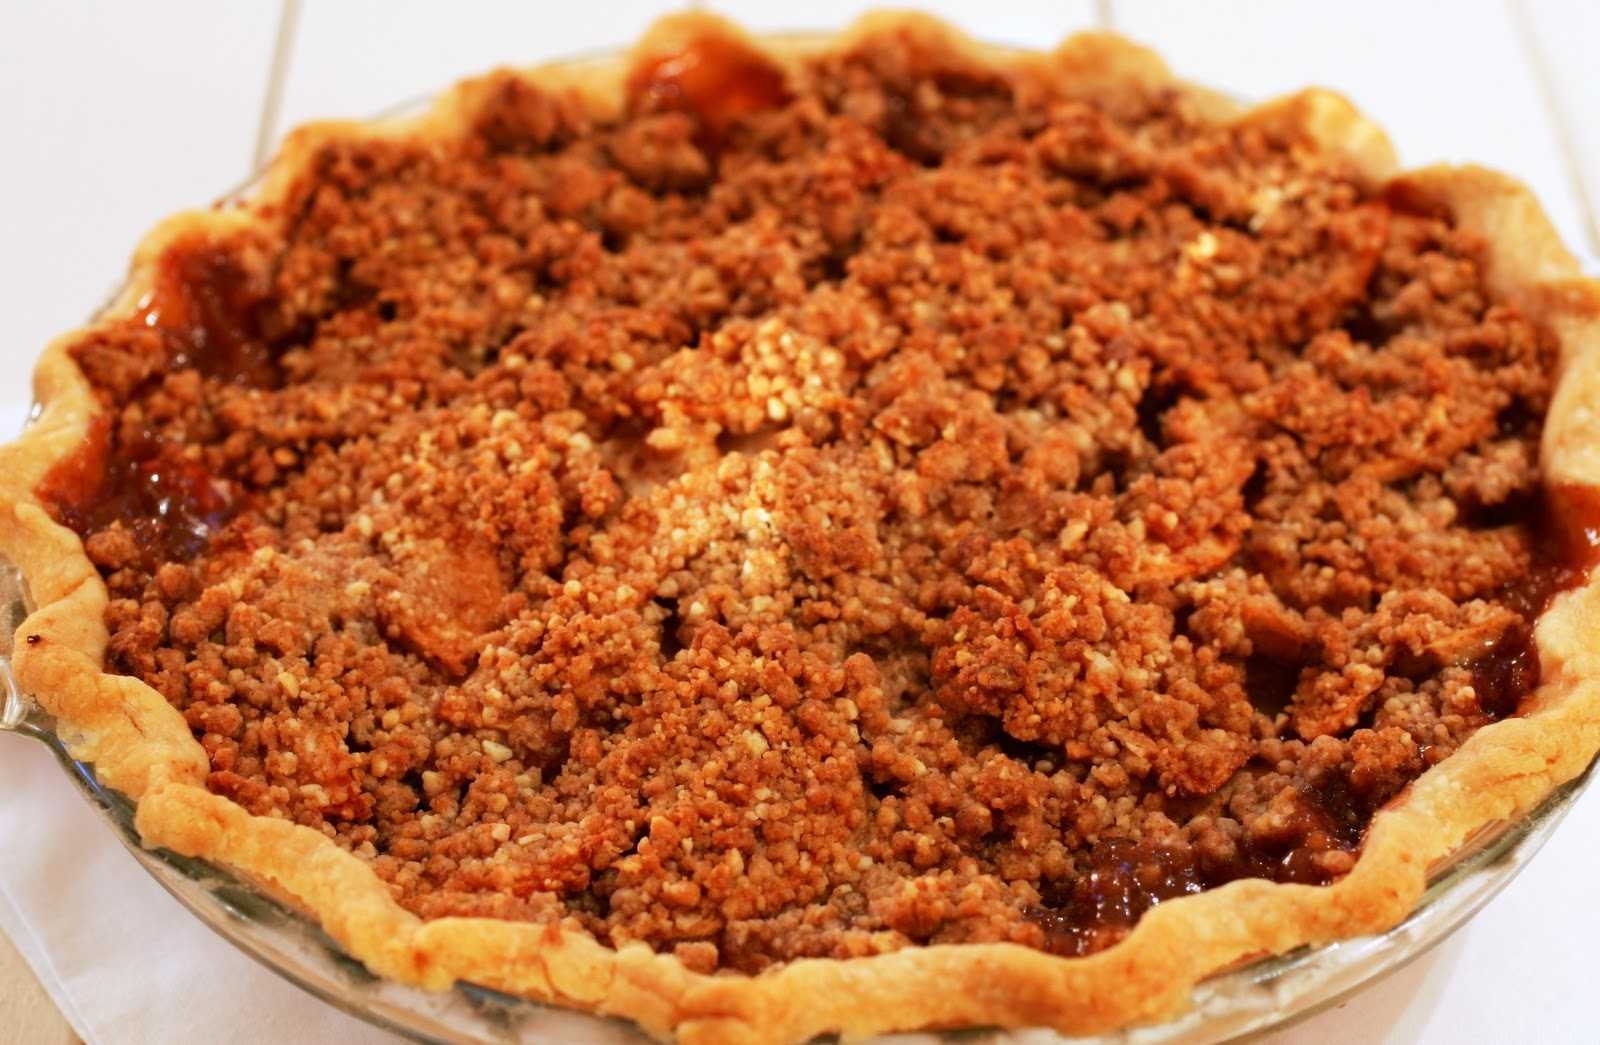 Tish Boyle Sweet Dreams: Streusel-Topped Apple Pie